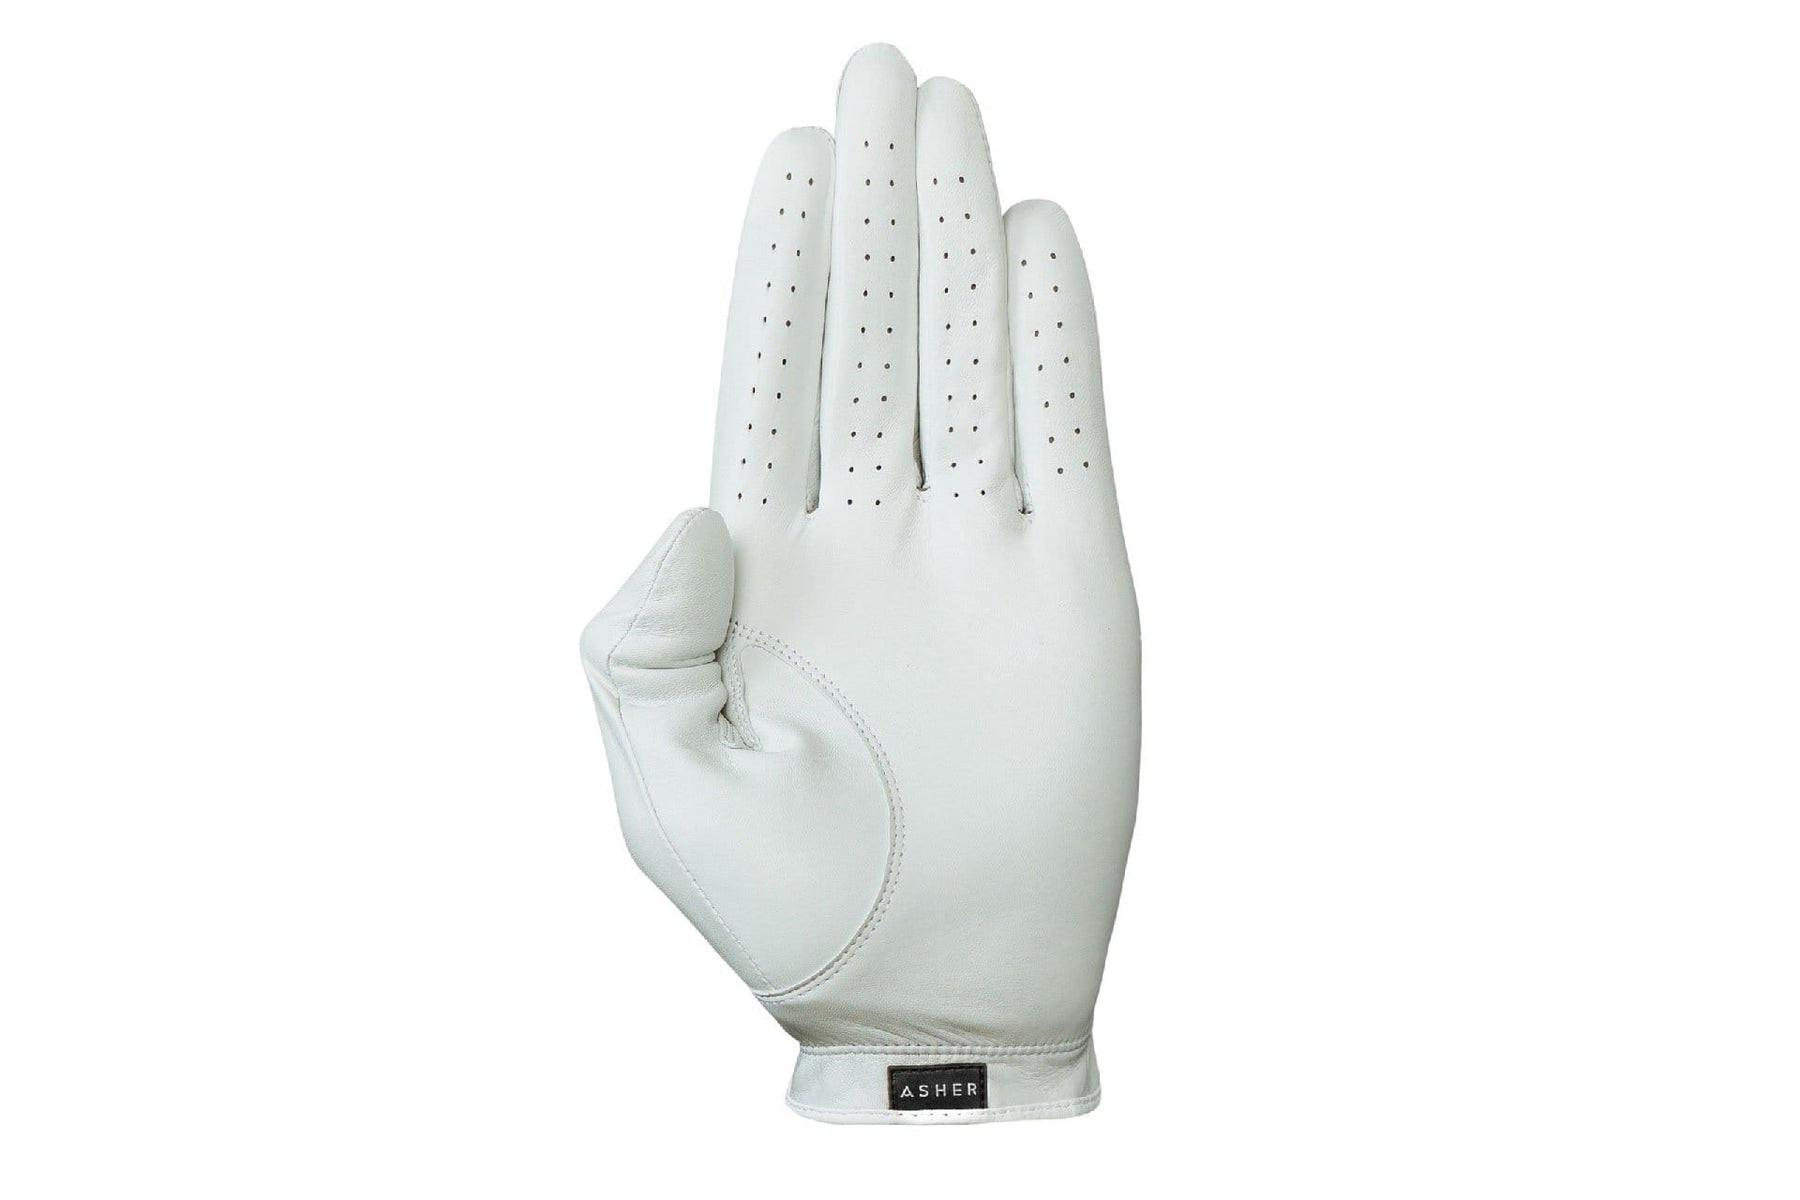 Luxury Leather Golf Glove | Cabretta White Leather  | Royal Albartross The Windsor White